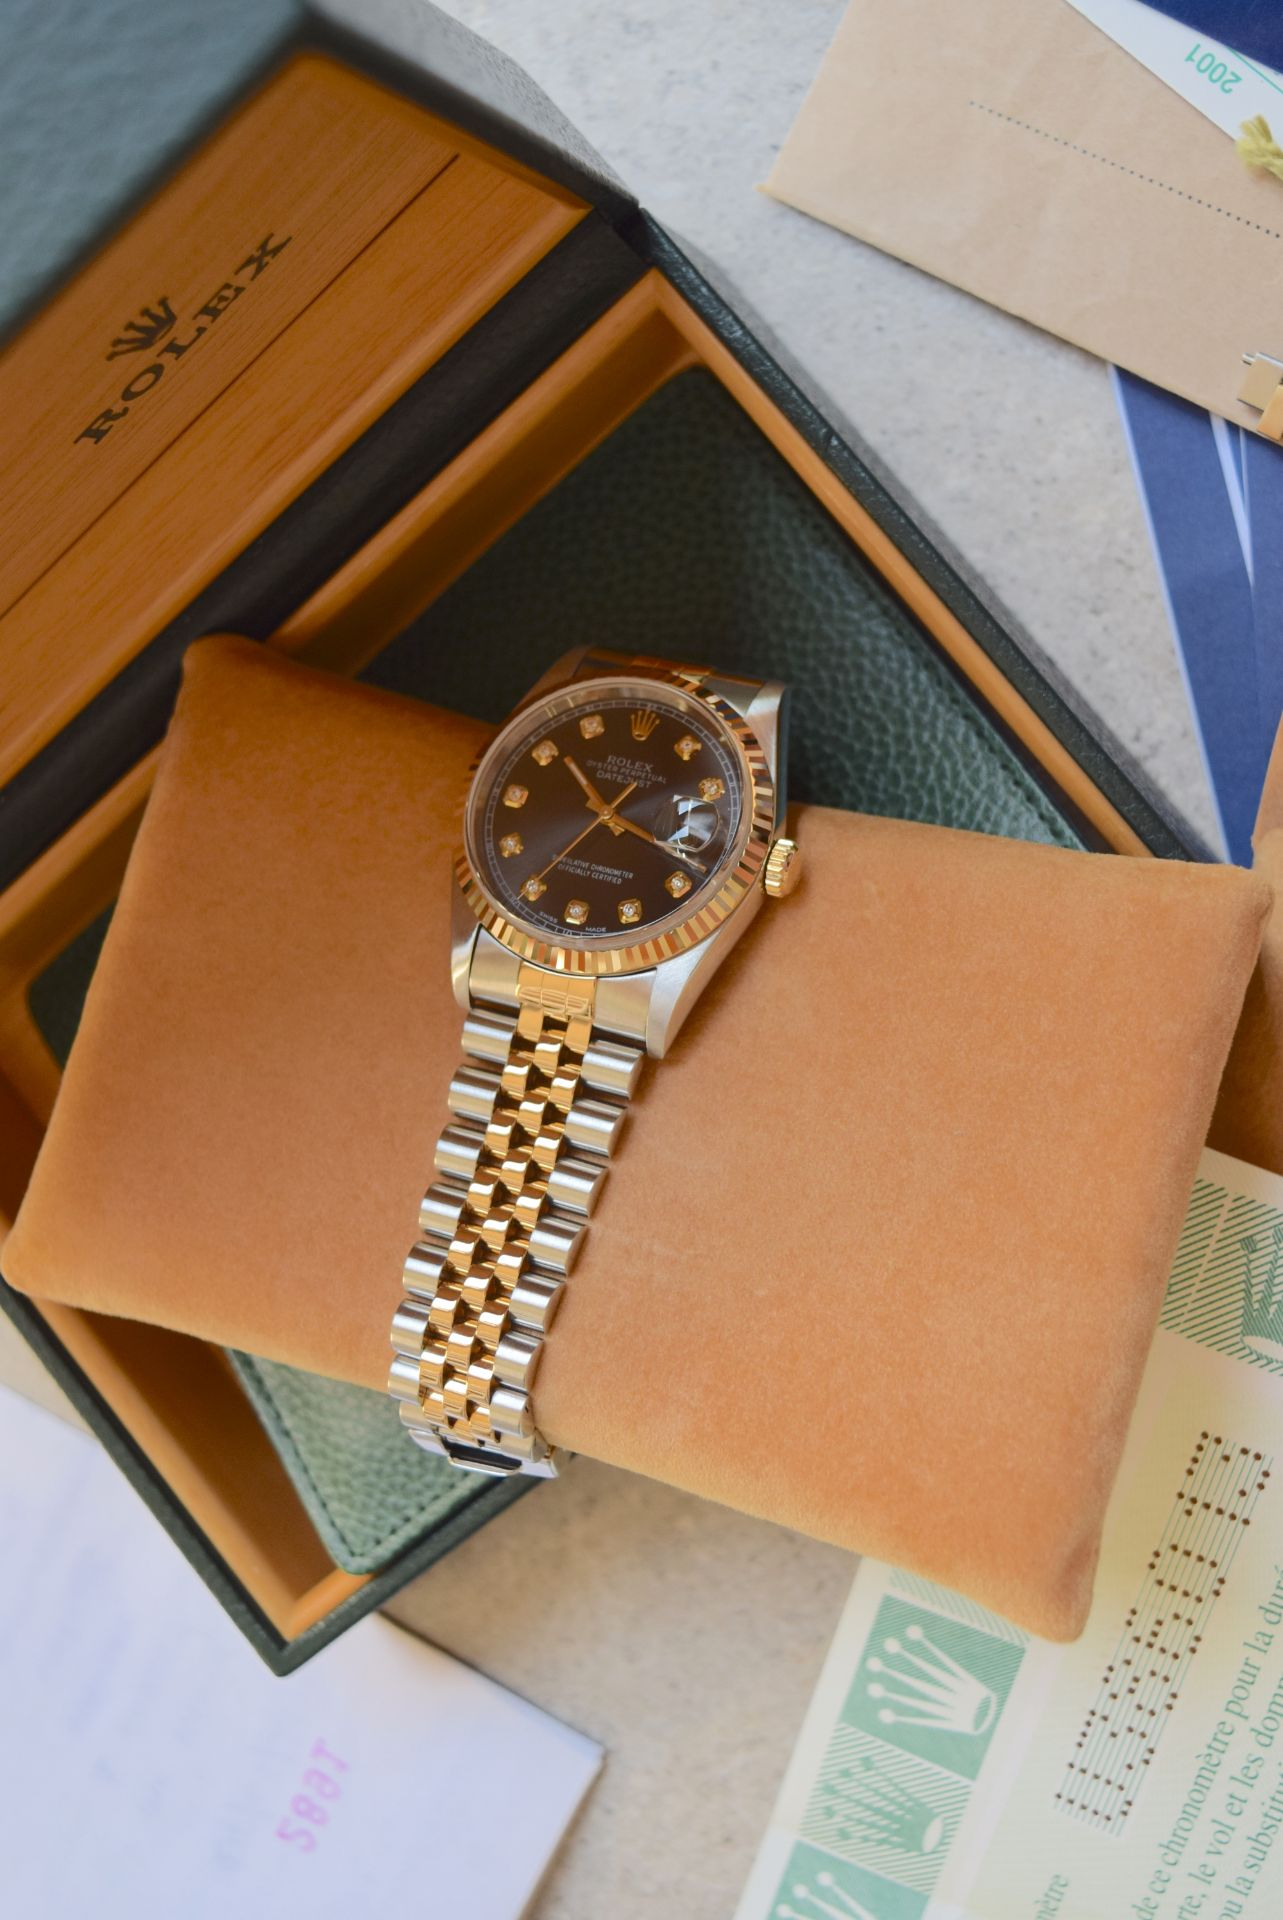 18CT GOLD/ STEEL ROLEX DATEJUST - 36MM, MENS (COMPLETE SET INC BOX, PAPERS, TAGS ETC) - Image 17 of 25